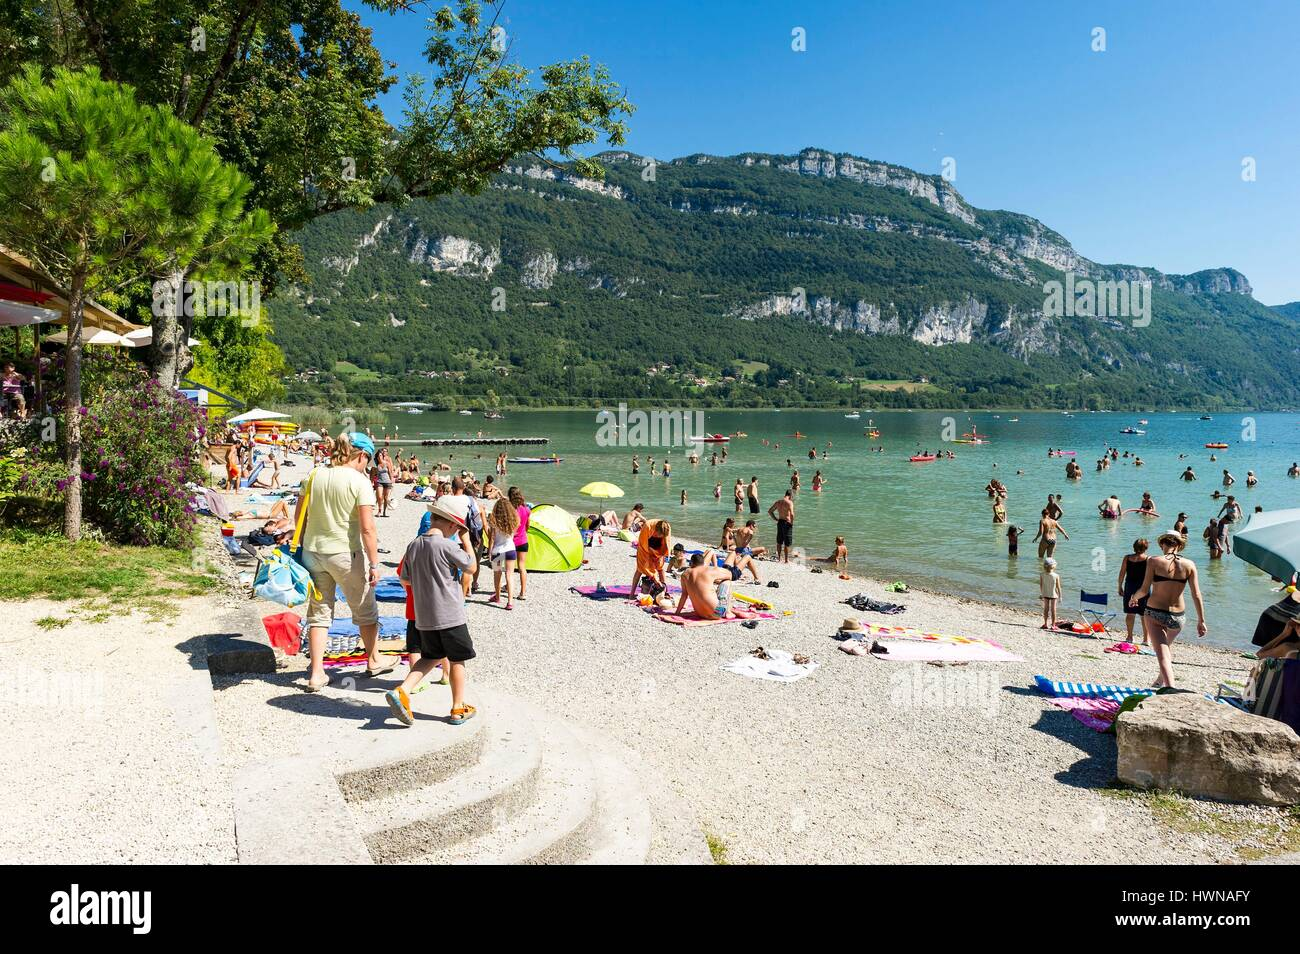 france savoie aix les bains la plage de ch tillon banque d 39 images photo stock 136308255 alamy. Black Bedroom Furniture Sets. Home Design Ideas